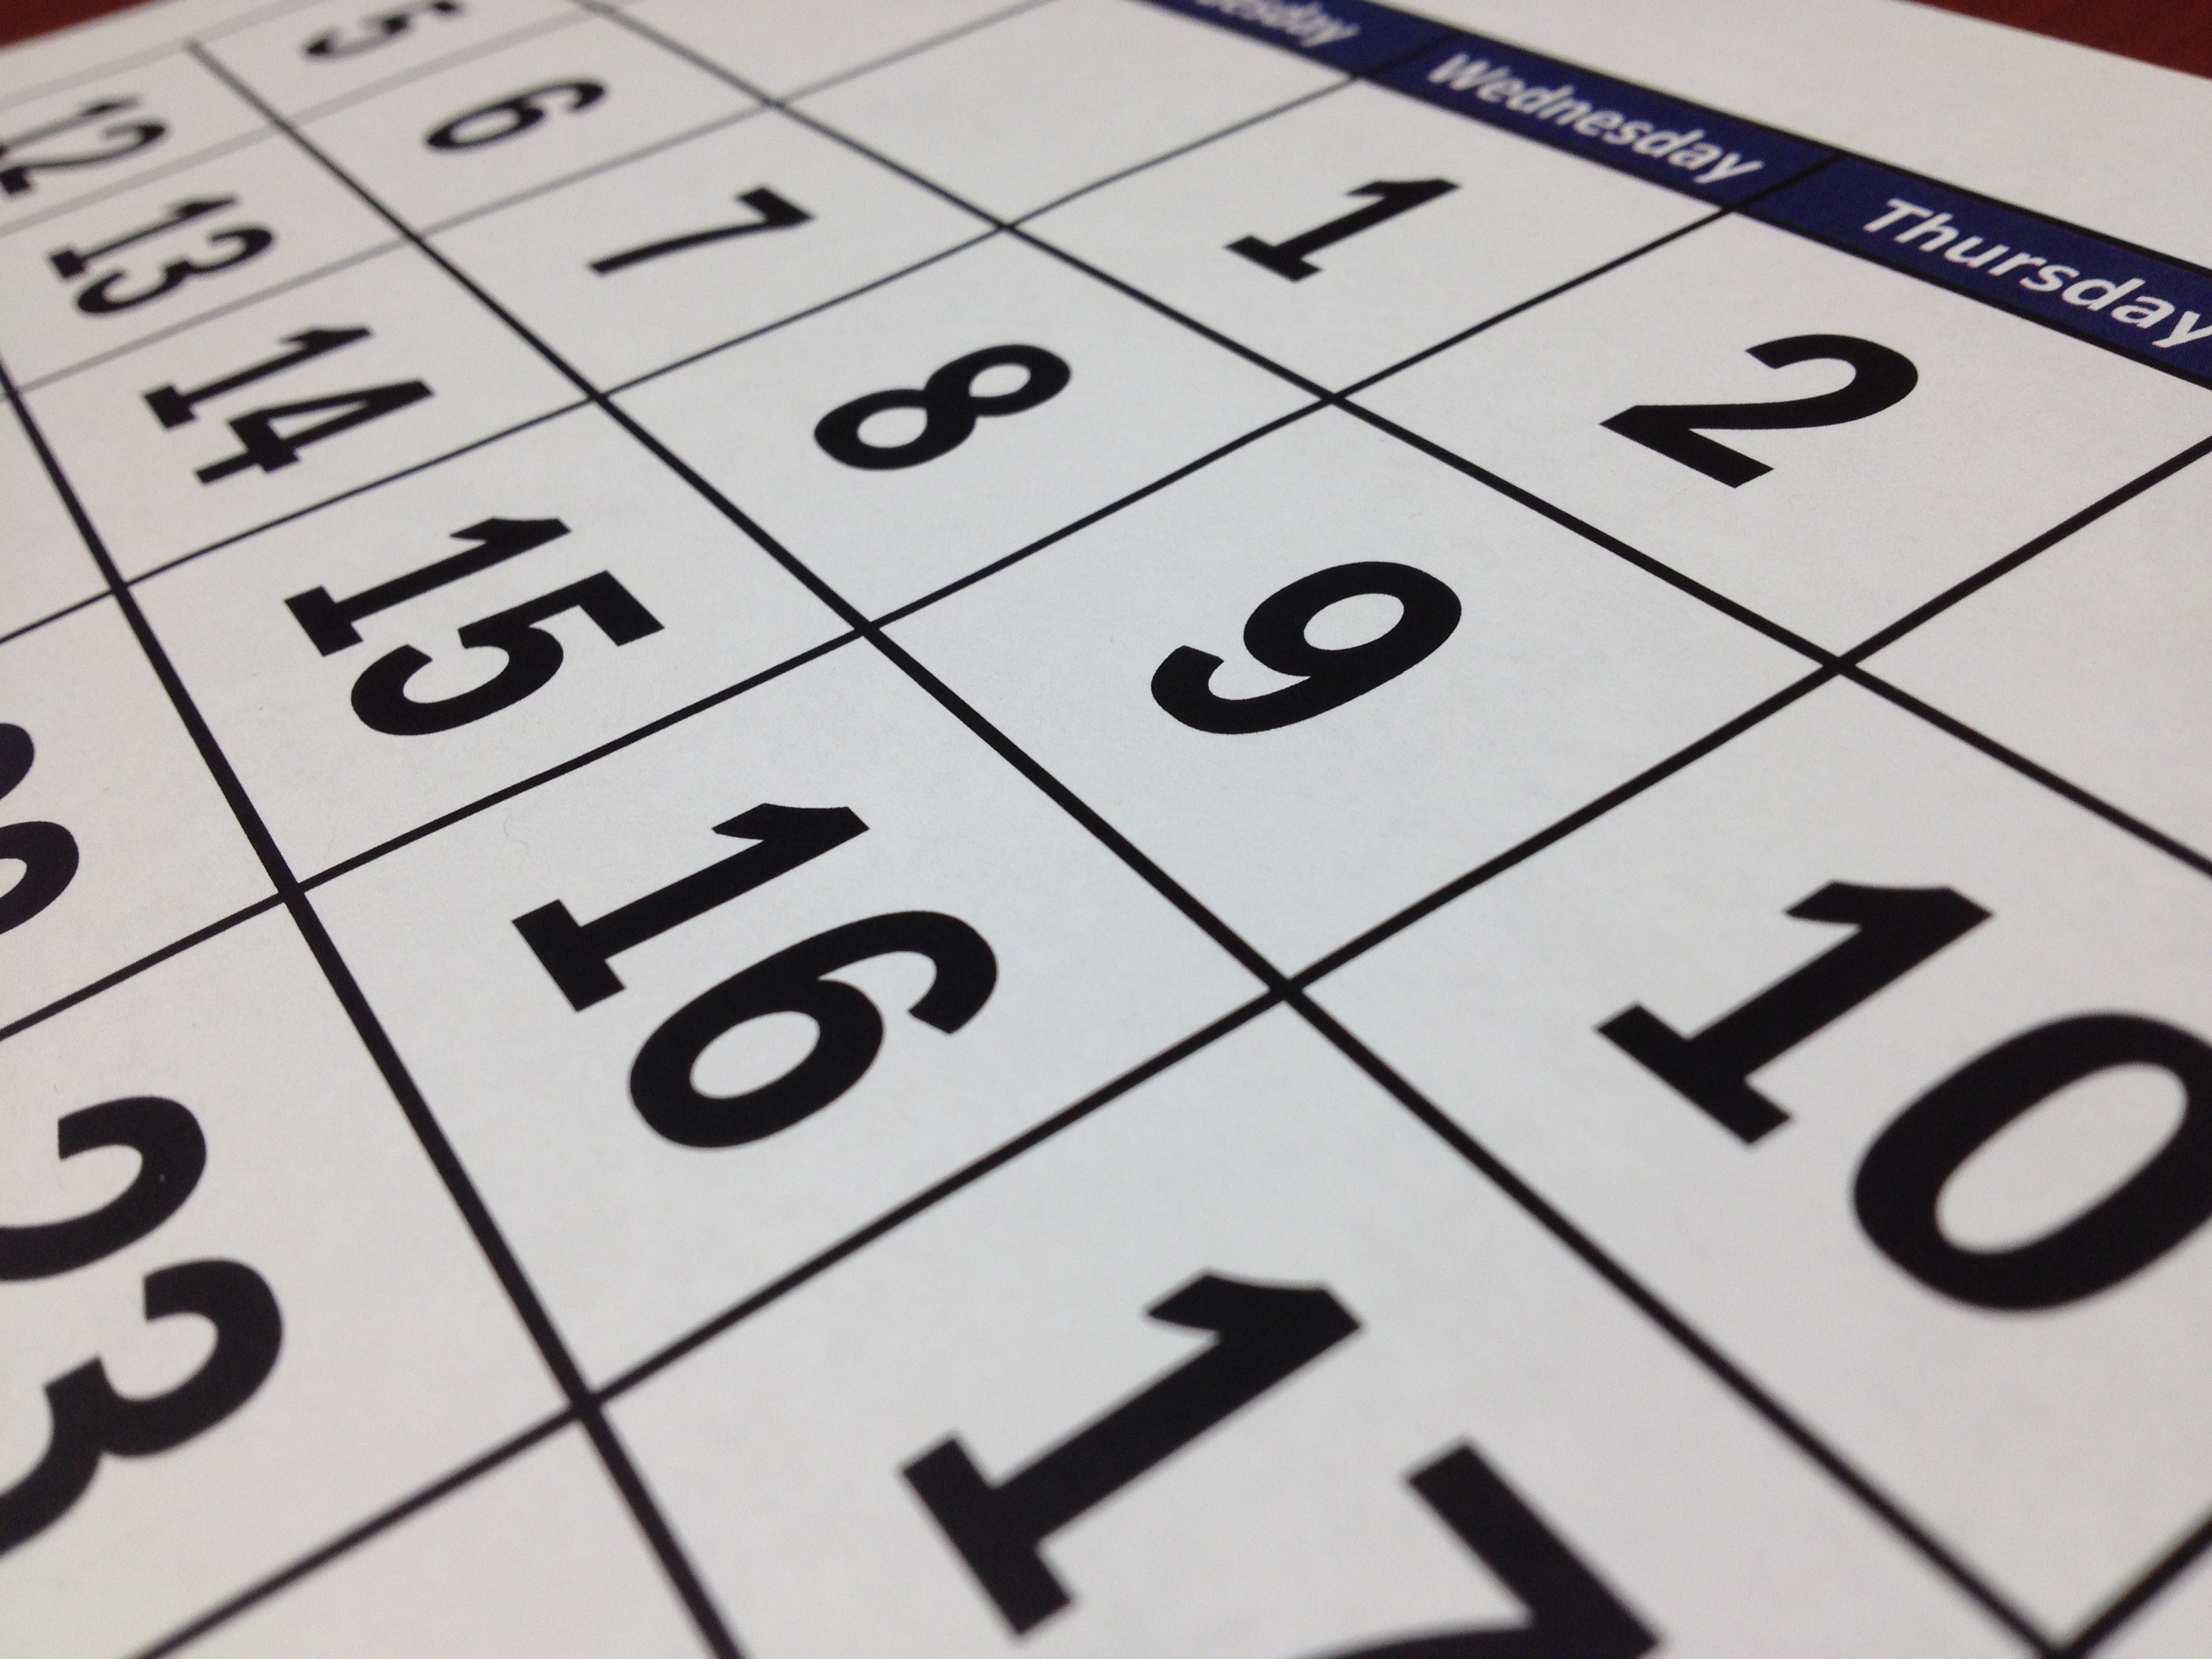 Closeup photograph of the daily cells on a calendar